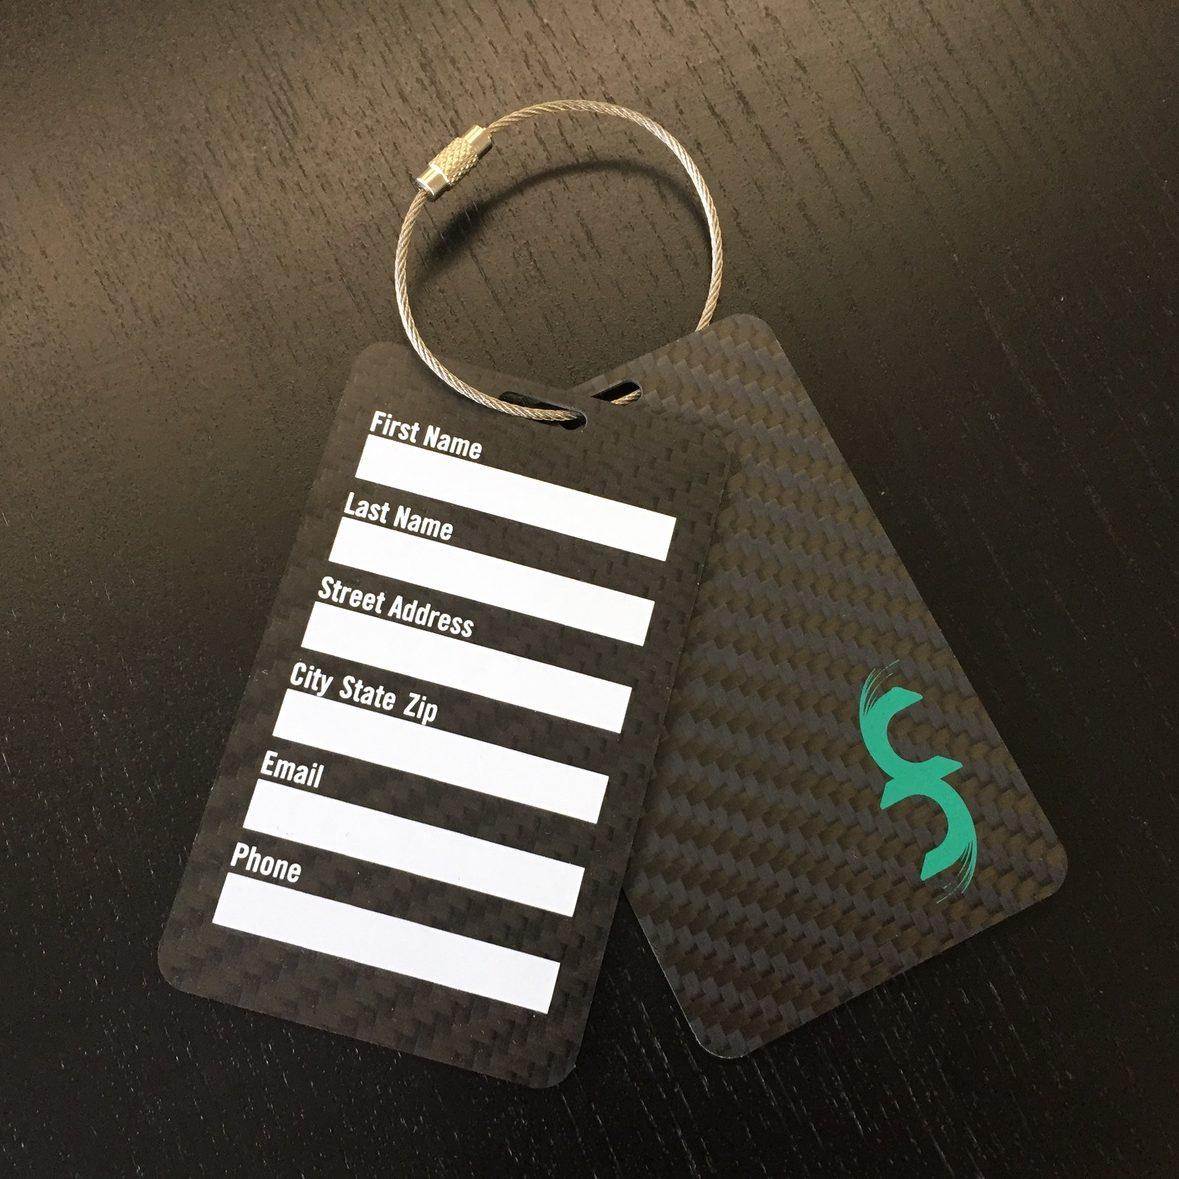 Common Fibers - Carbon Fiber Luggage and Bag Tags